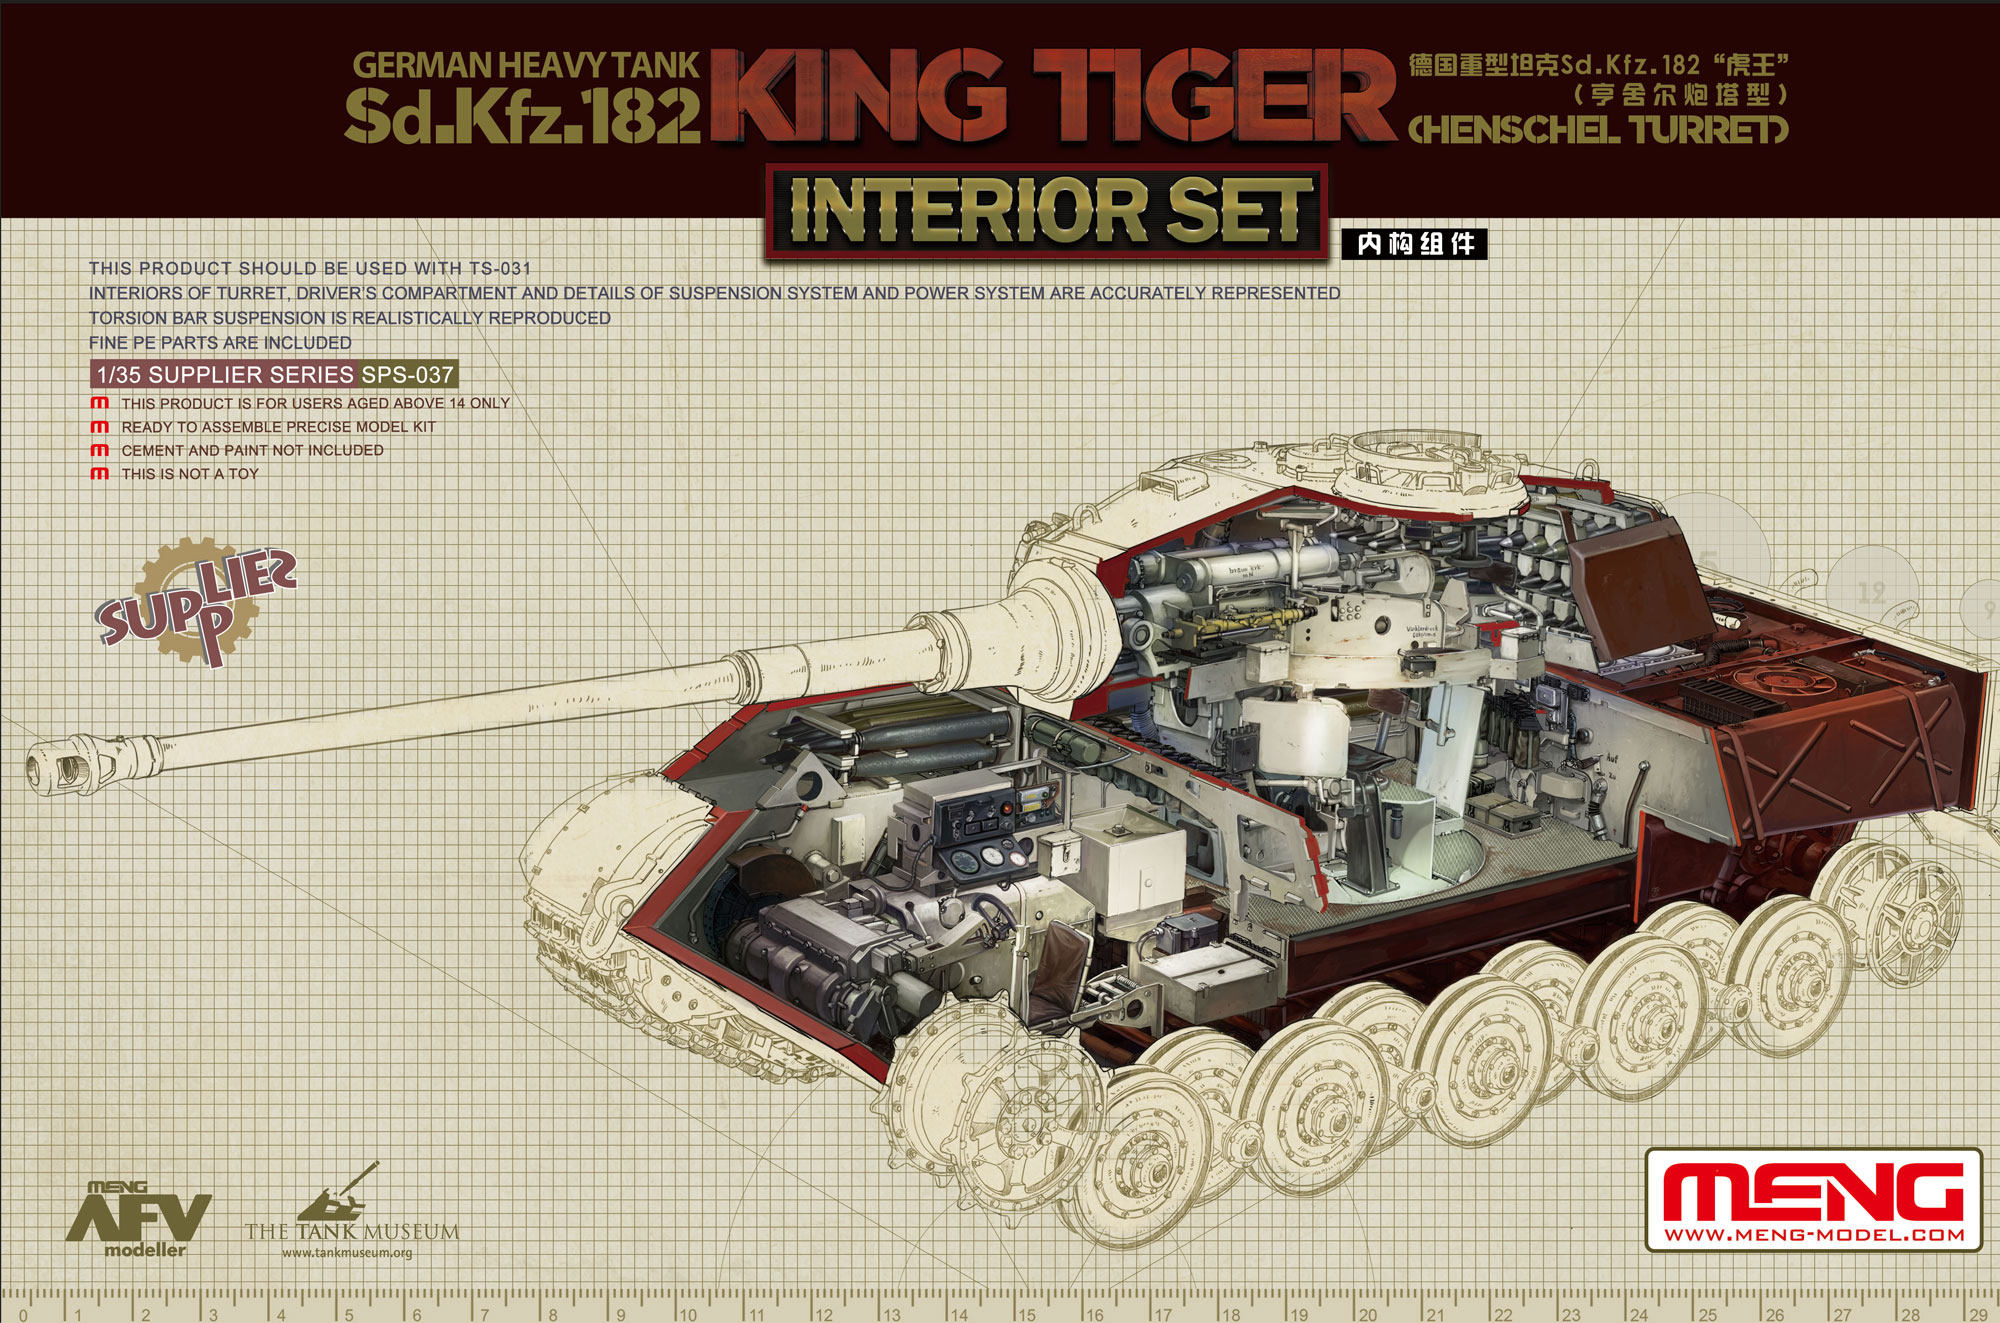 Meng 1/35 German Heavy Tank Sd.Kfz.182 King Tiger (Henschel Turret) Interior Set